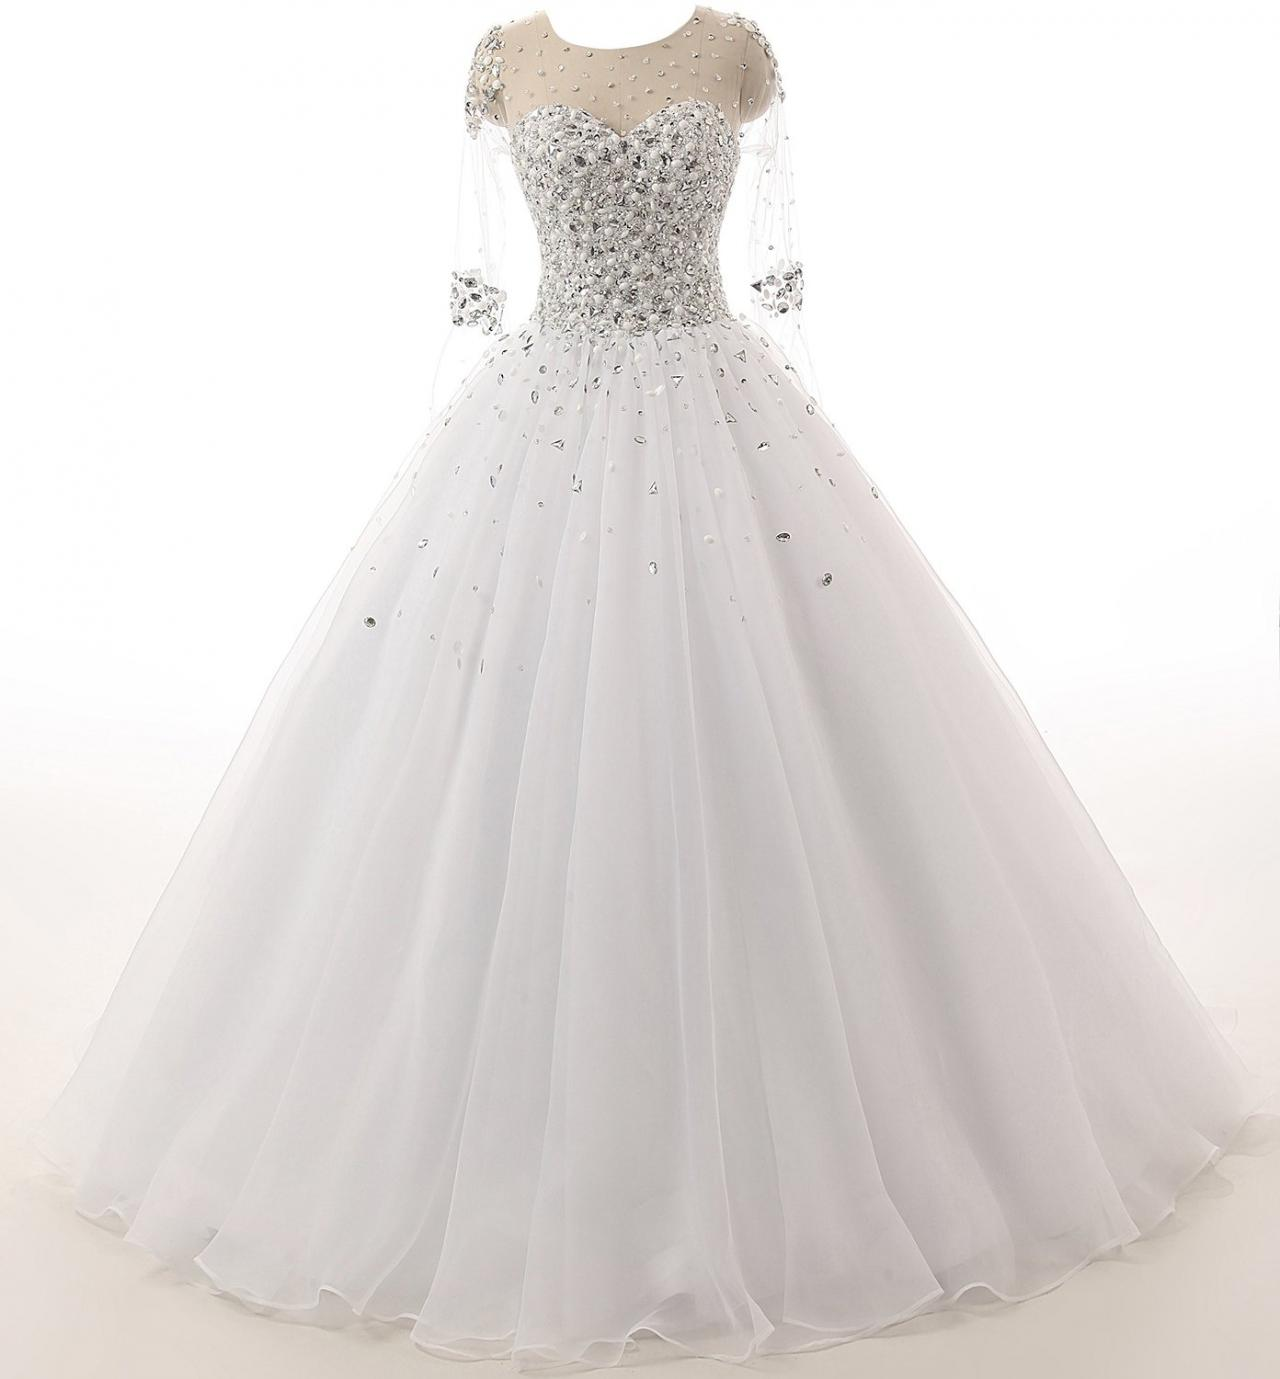 Wedding Dress Wedding Dresses Tulle, A-line, Cocktail Dresses, Short Dresses, Sleeveless Dresses